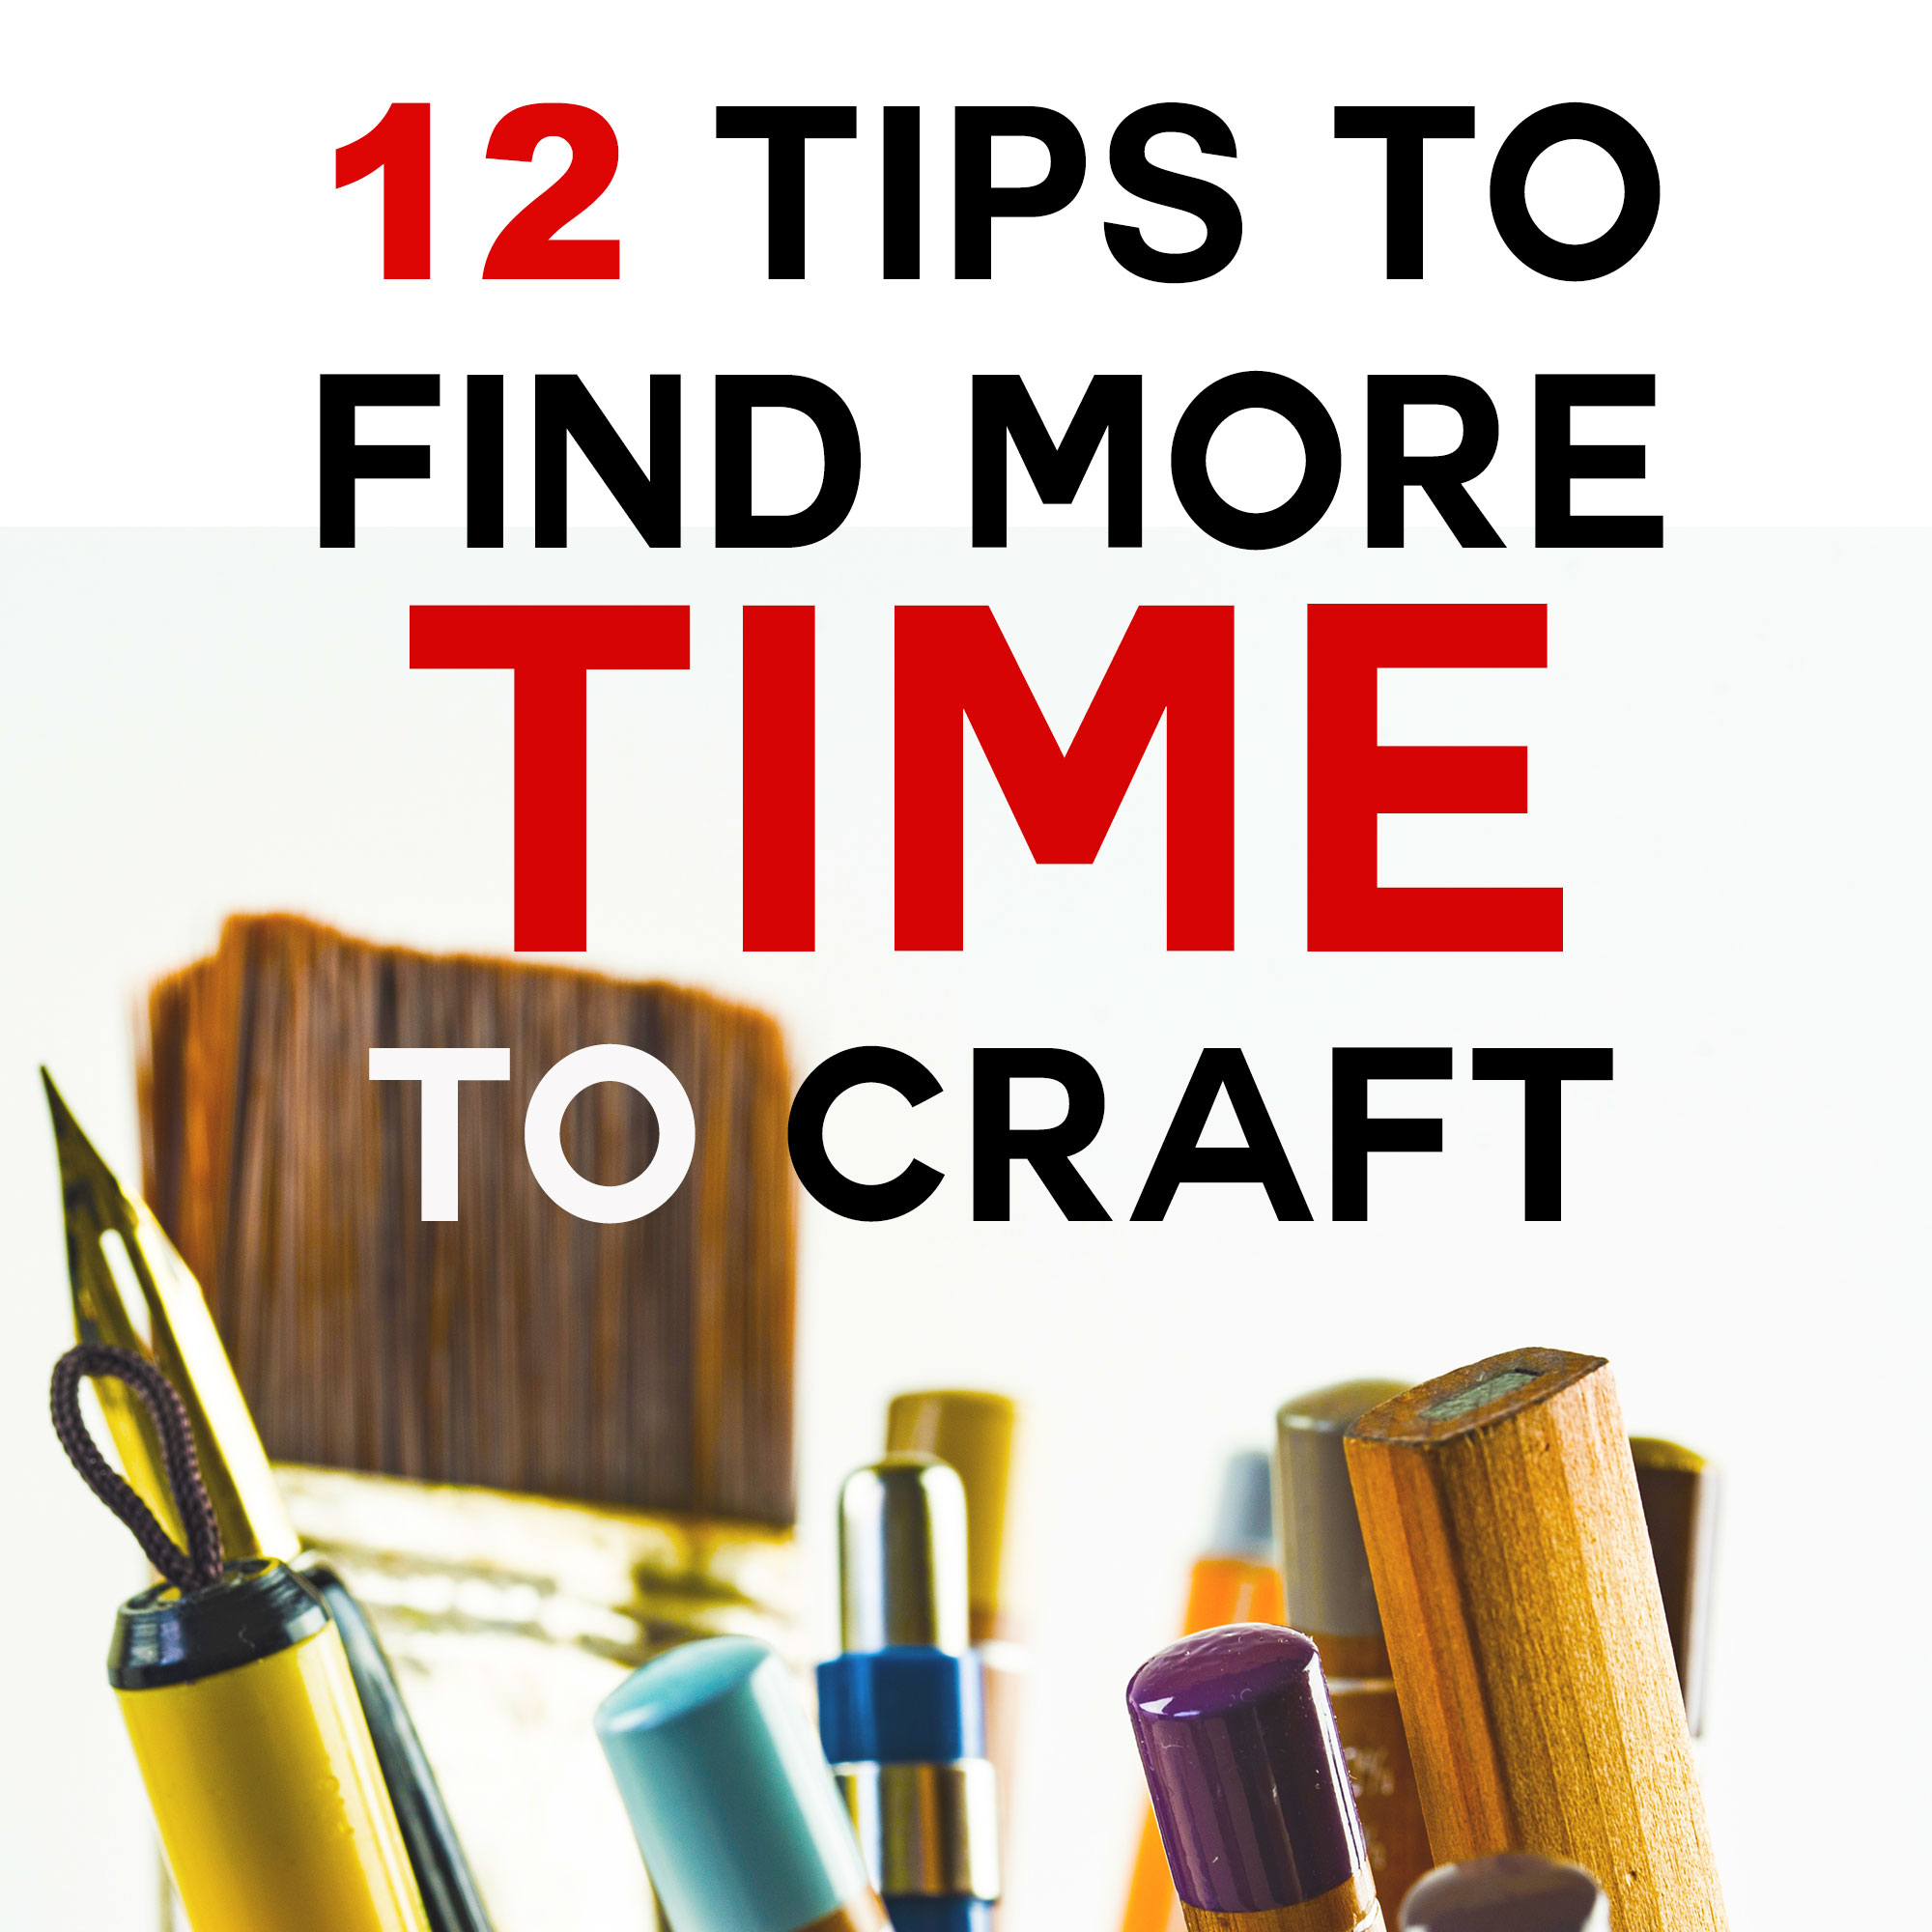 12 Tips to Find More Time to Craft | JenniferMaker.com